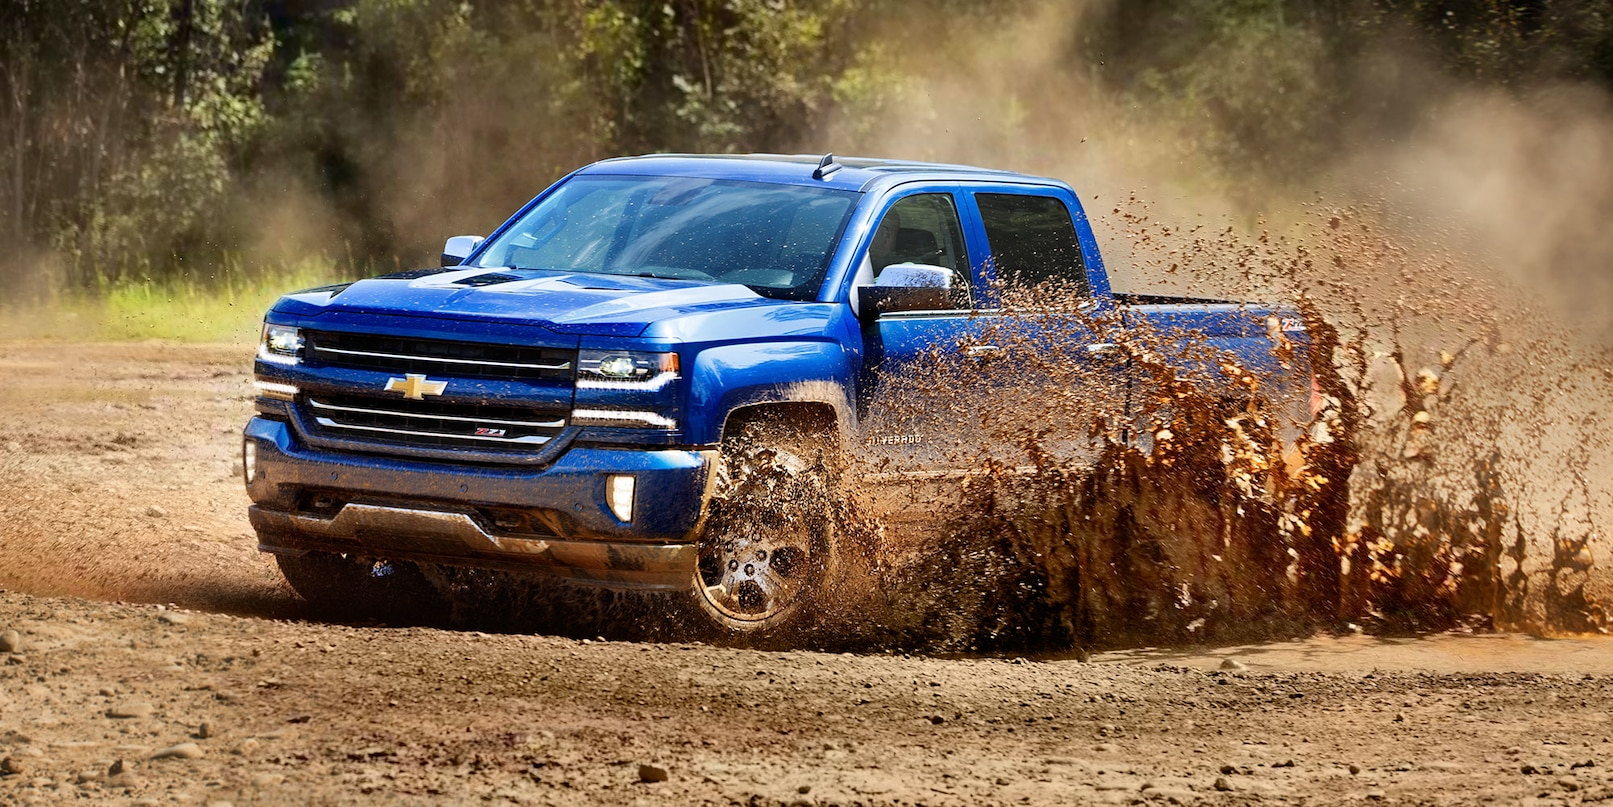 2018 Chevrolet Silverado 1500 Leasing in Elk Grove, CA